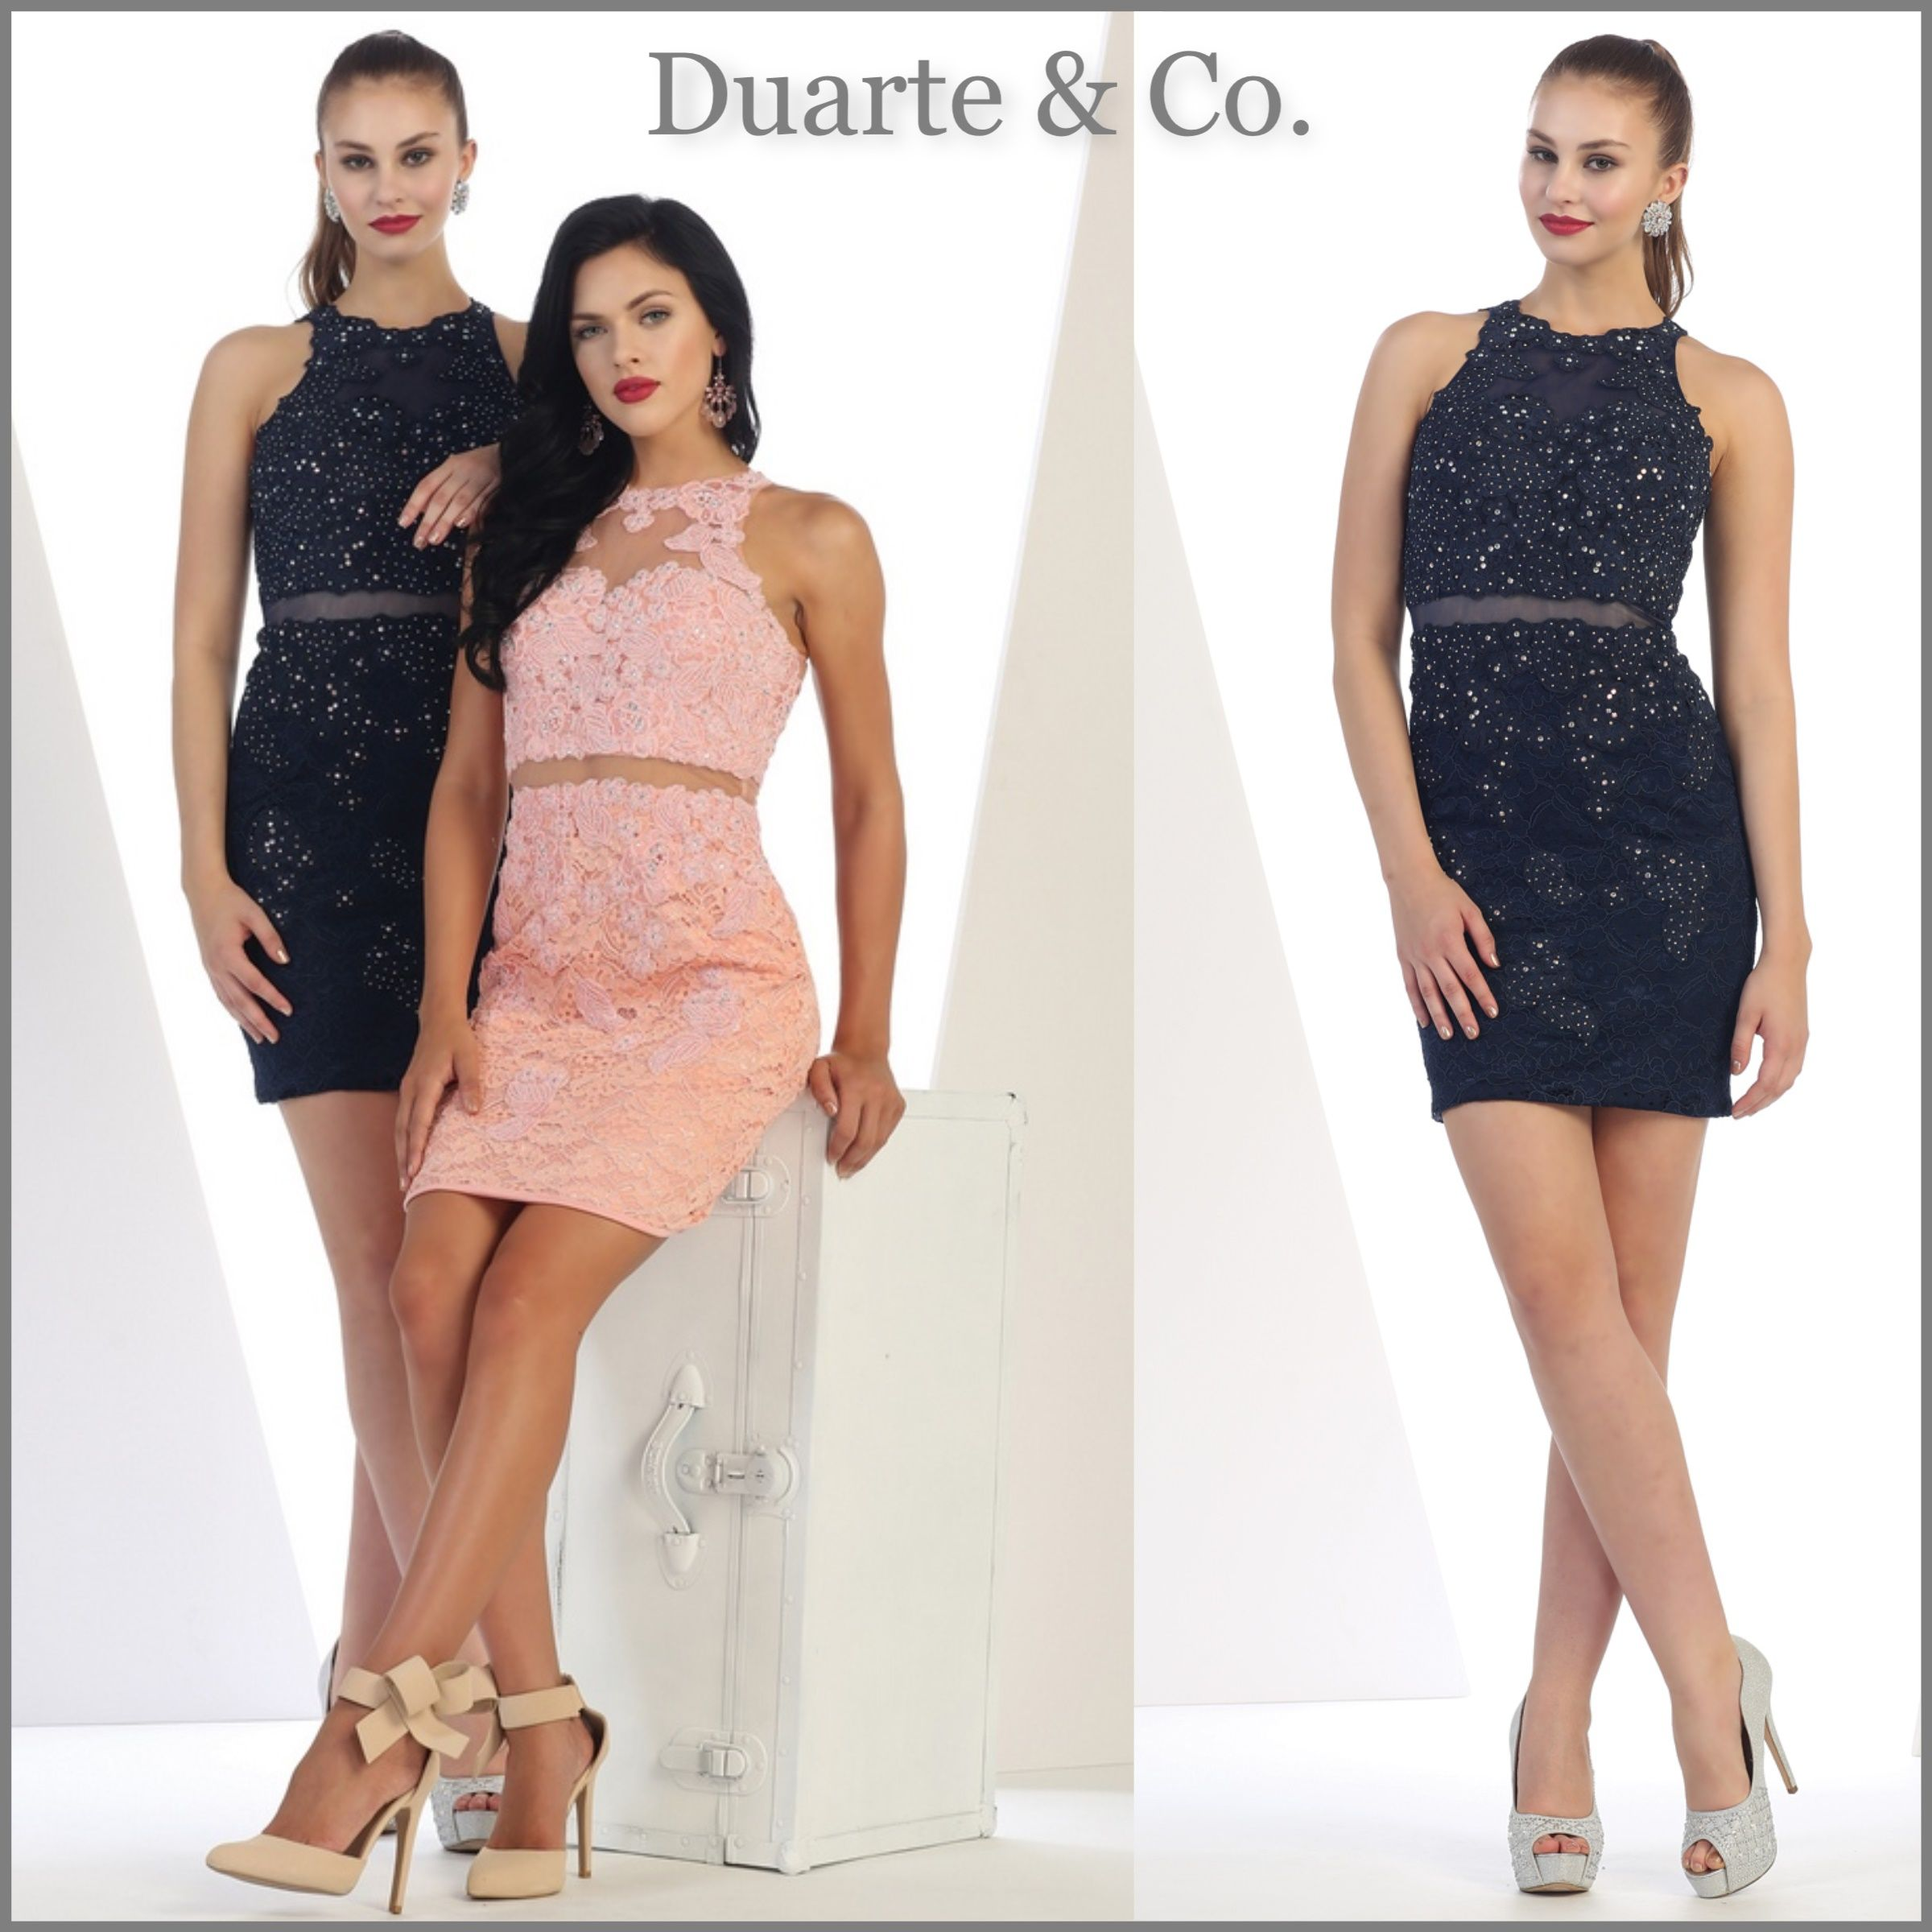 eecf11392468 MQ1291 $84.00 Dazzling Short Lace Party Dress Comes in 5 colors and is  great for Prom, Graduation, Birthday and any special occasion. Available  sizes 4-16.